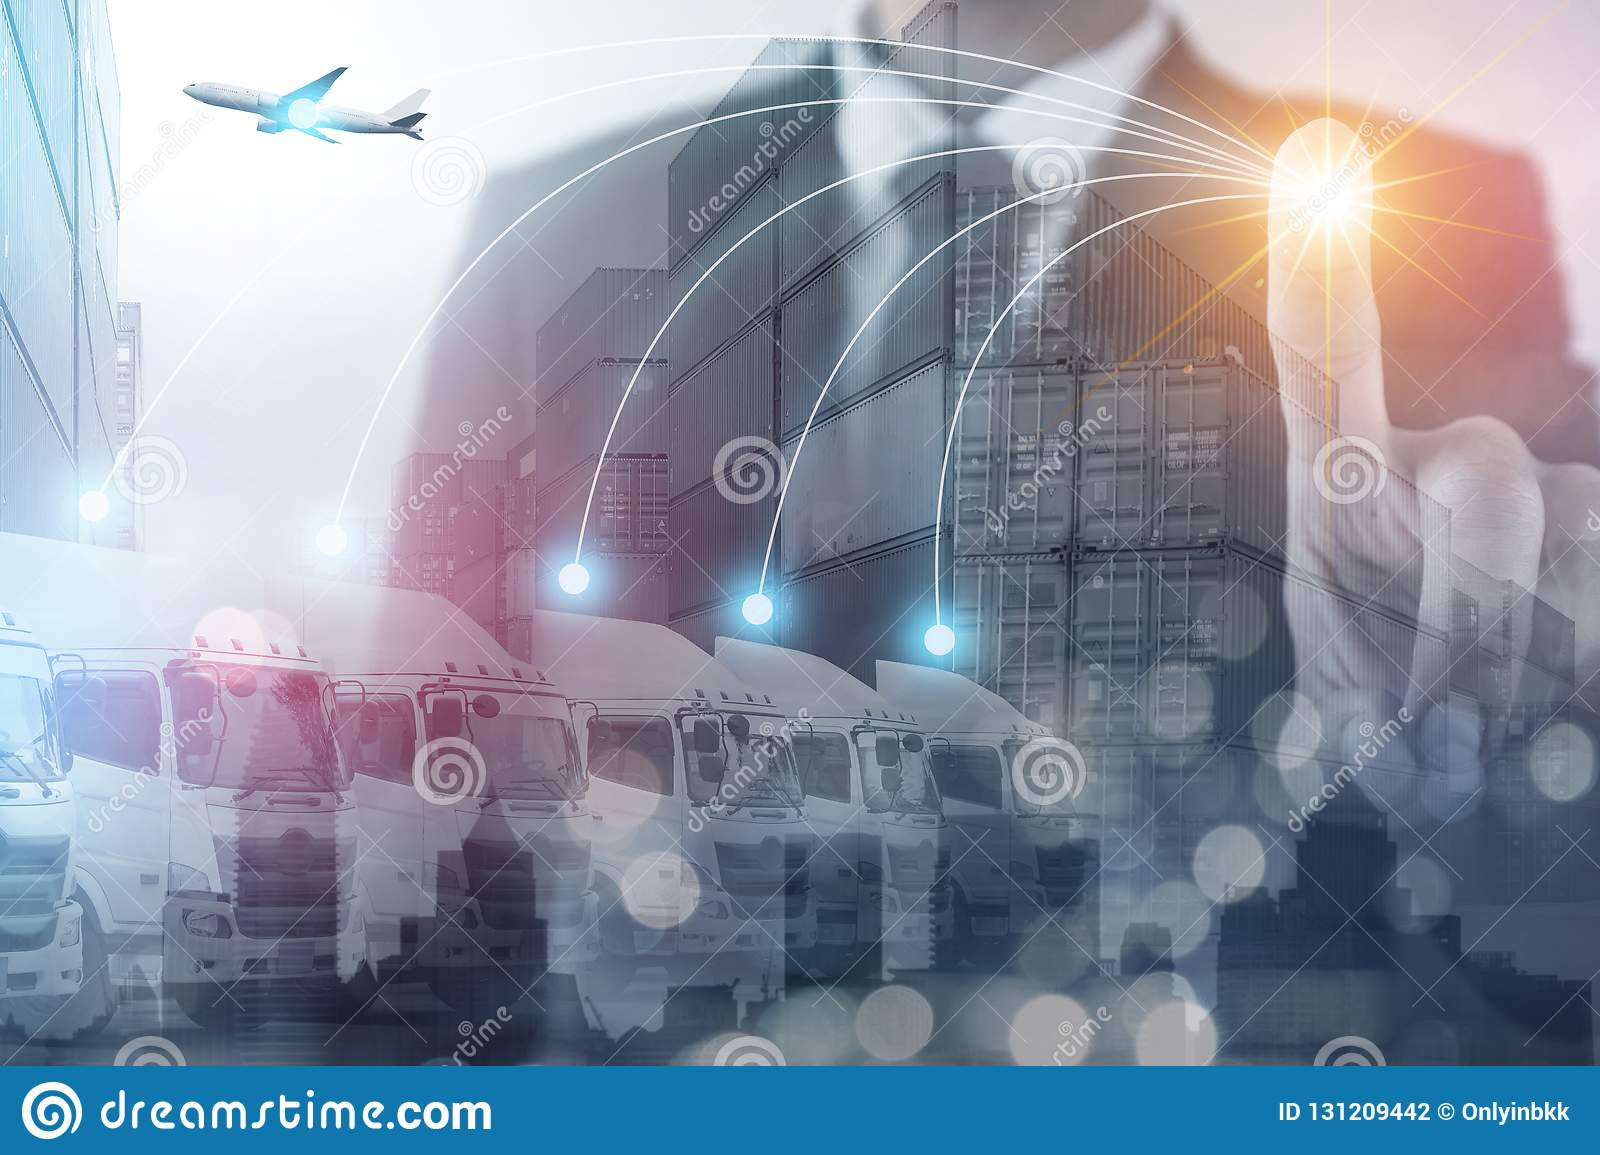 Logistics Shipping Business Concept  Stock Photo - Image of